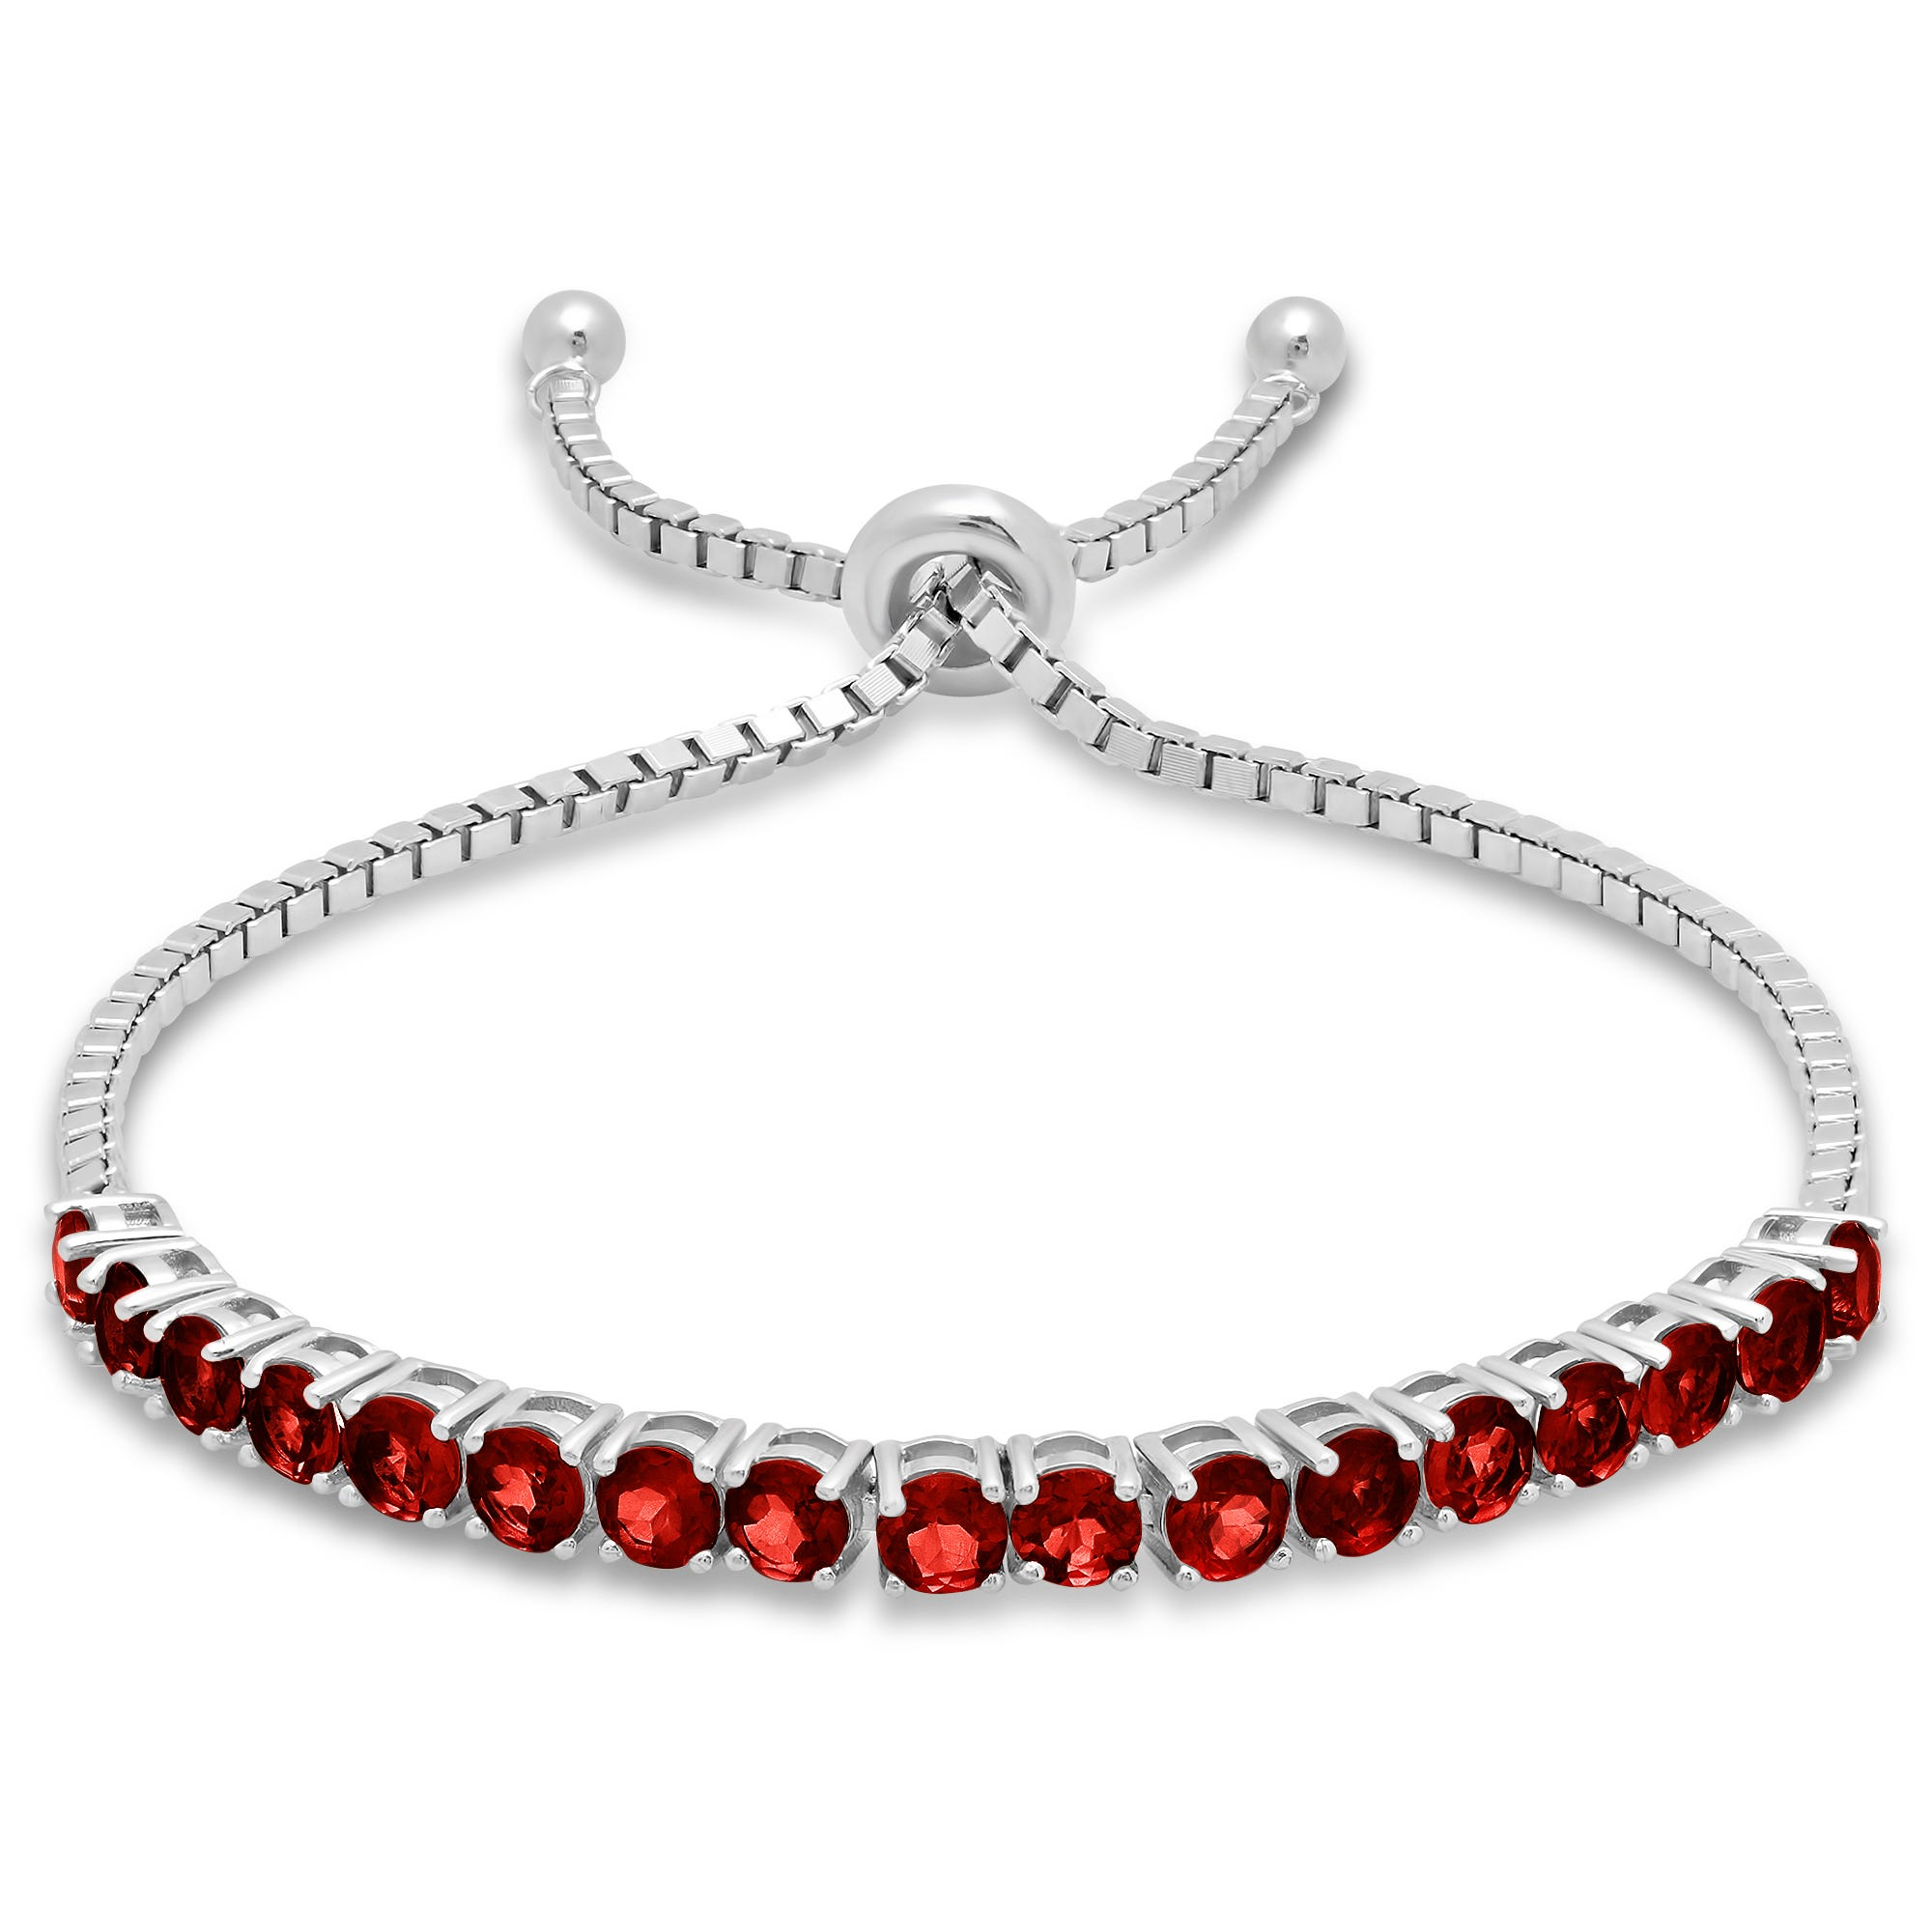 Garnet Adjustable Bolo Bracelet in Sterling Silver